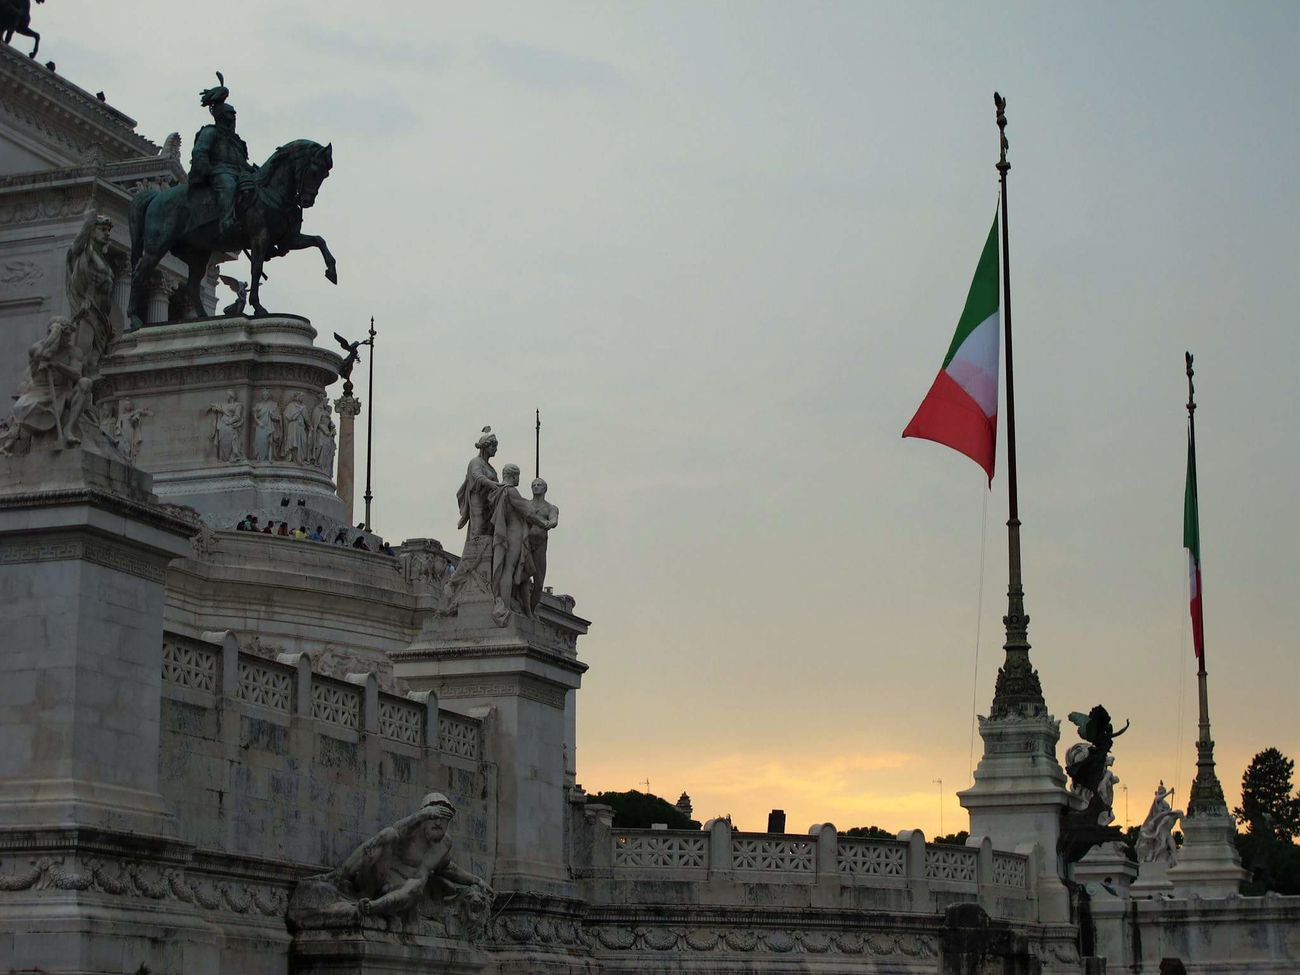 Flag Patriotism City Statue Travel Travel Destinations Government No People Politics And Government Altare Altaredellapatria Altare Della Patria Altare_della_patria Vittoriano Details Architecture_collection Architecture Detail City Detailphotography Romesweethome Rome_bigcity Rome Through My Eyes Sculpture Outdoors Architecture Rome